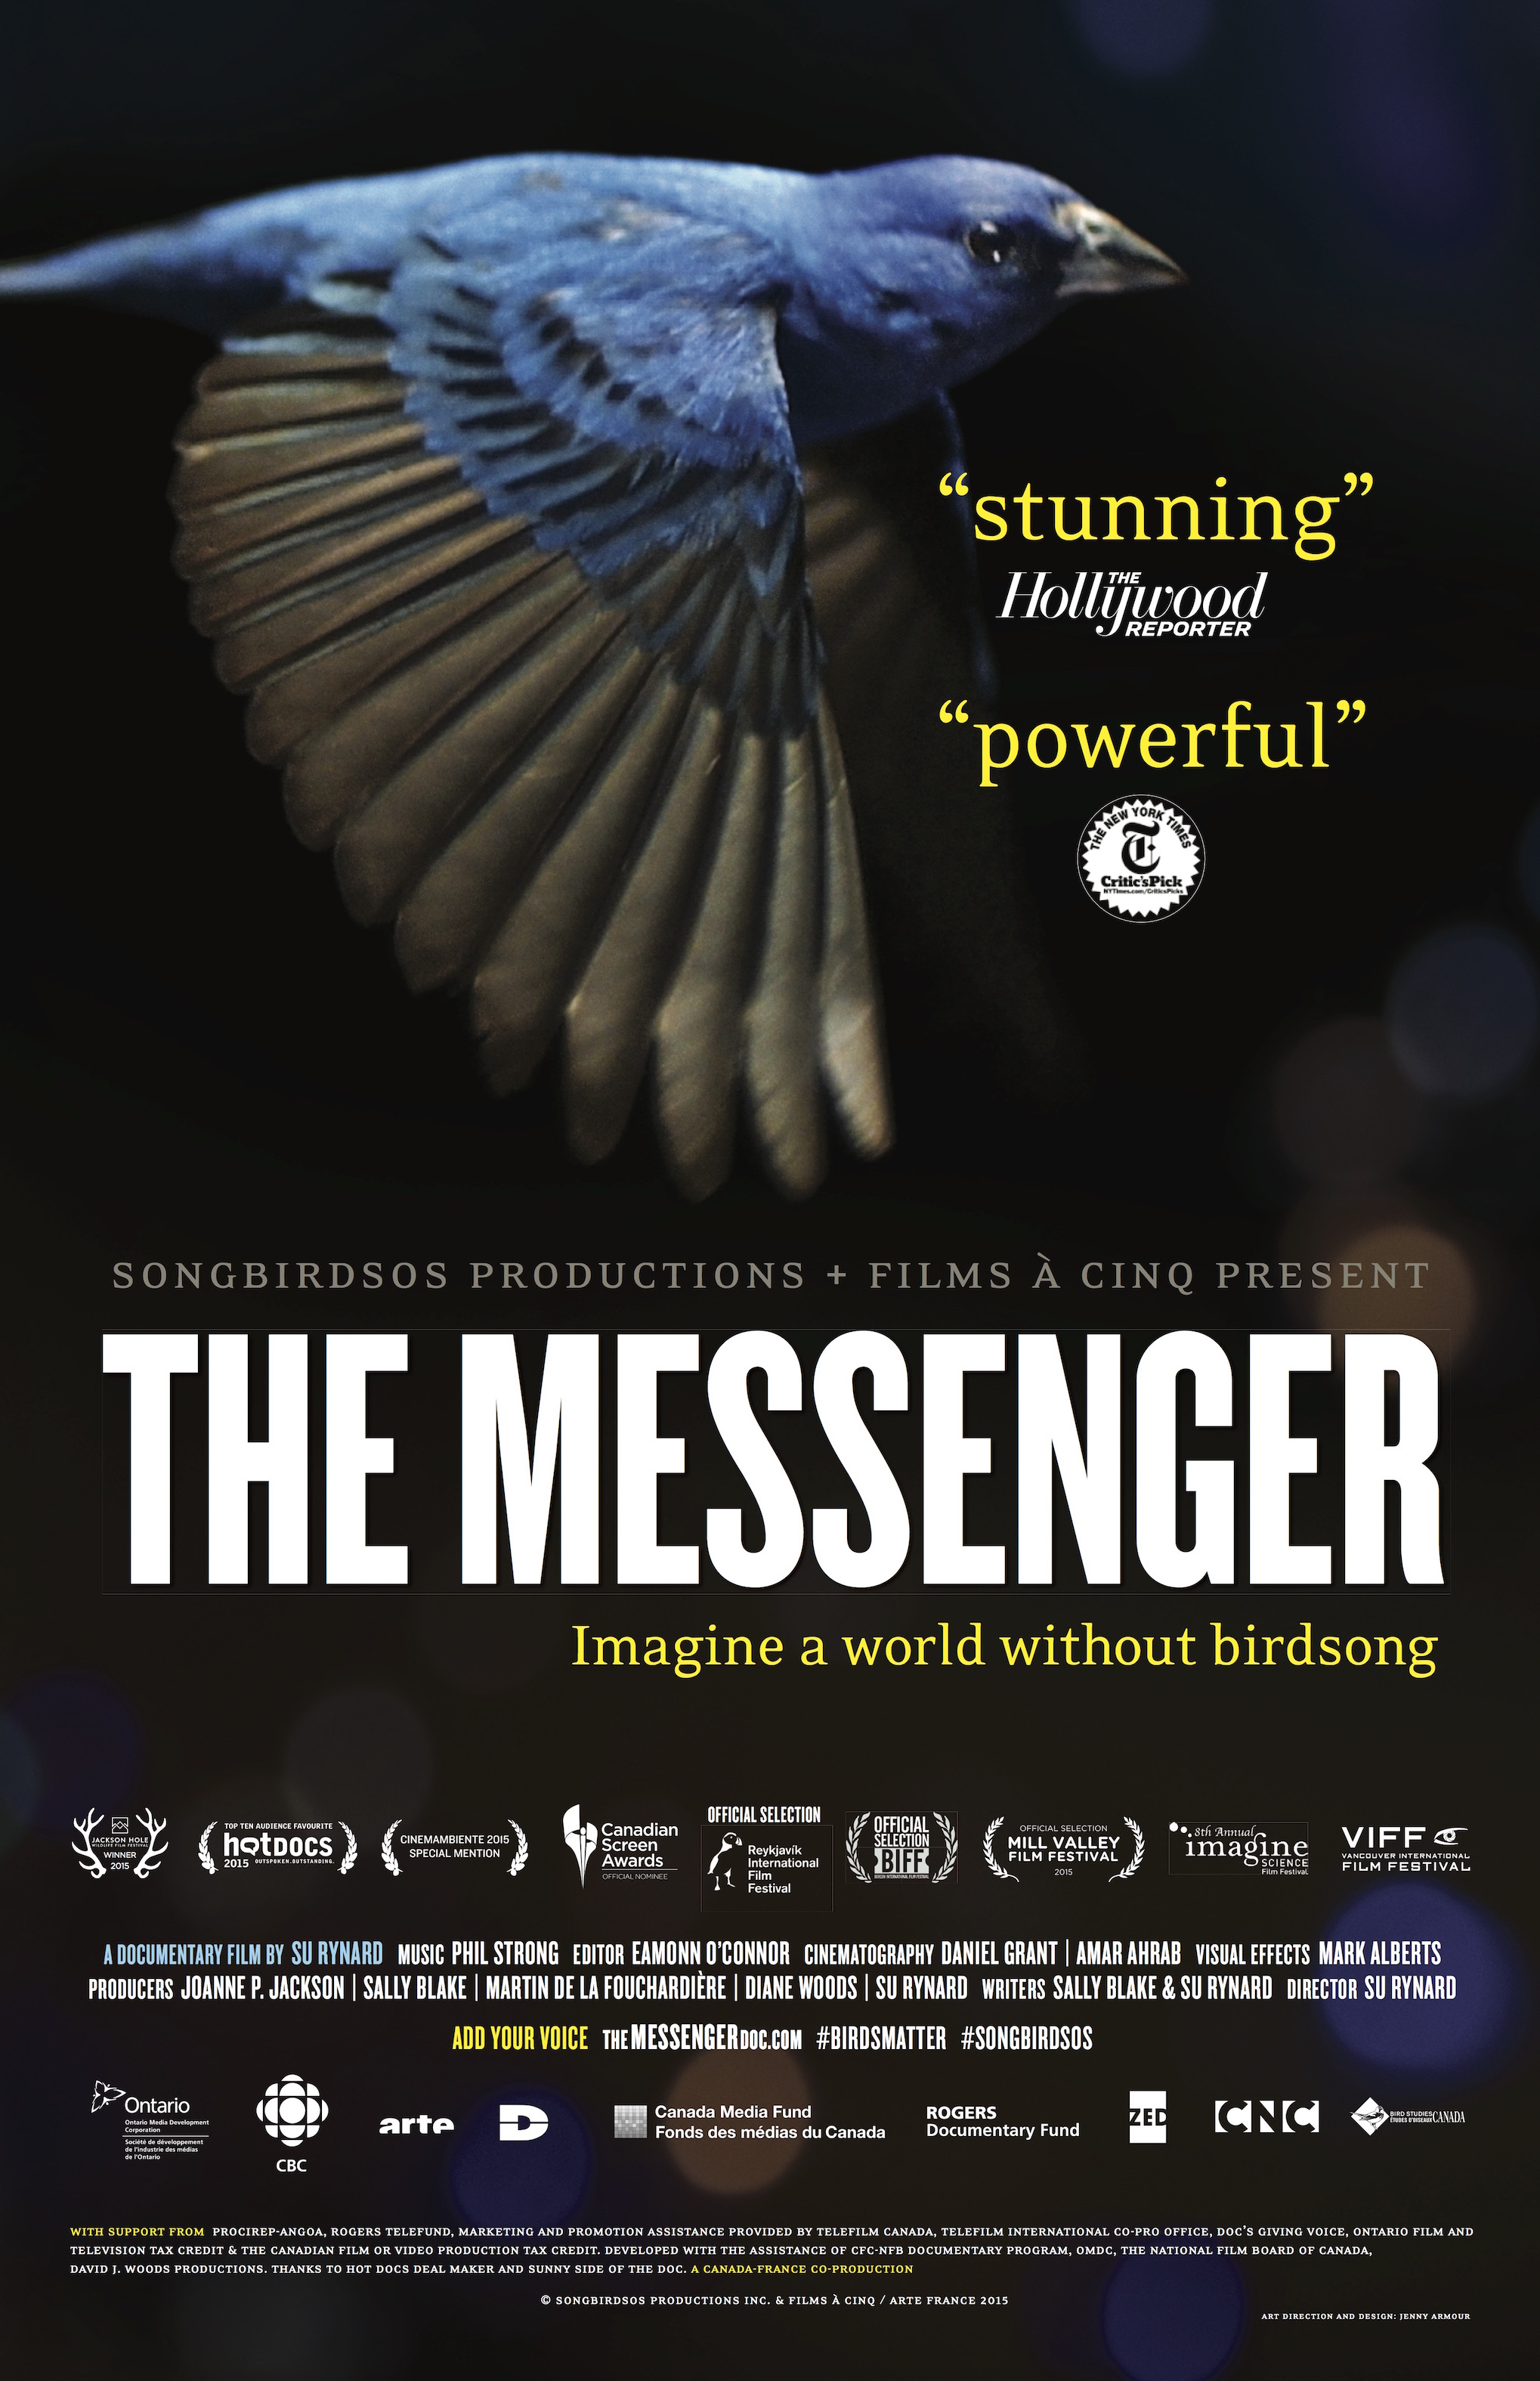 Poster for the documentary the Messenger.